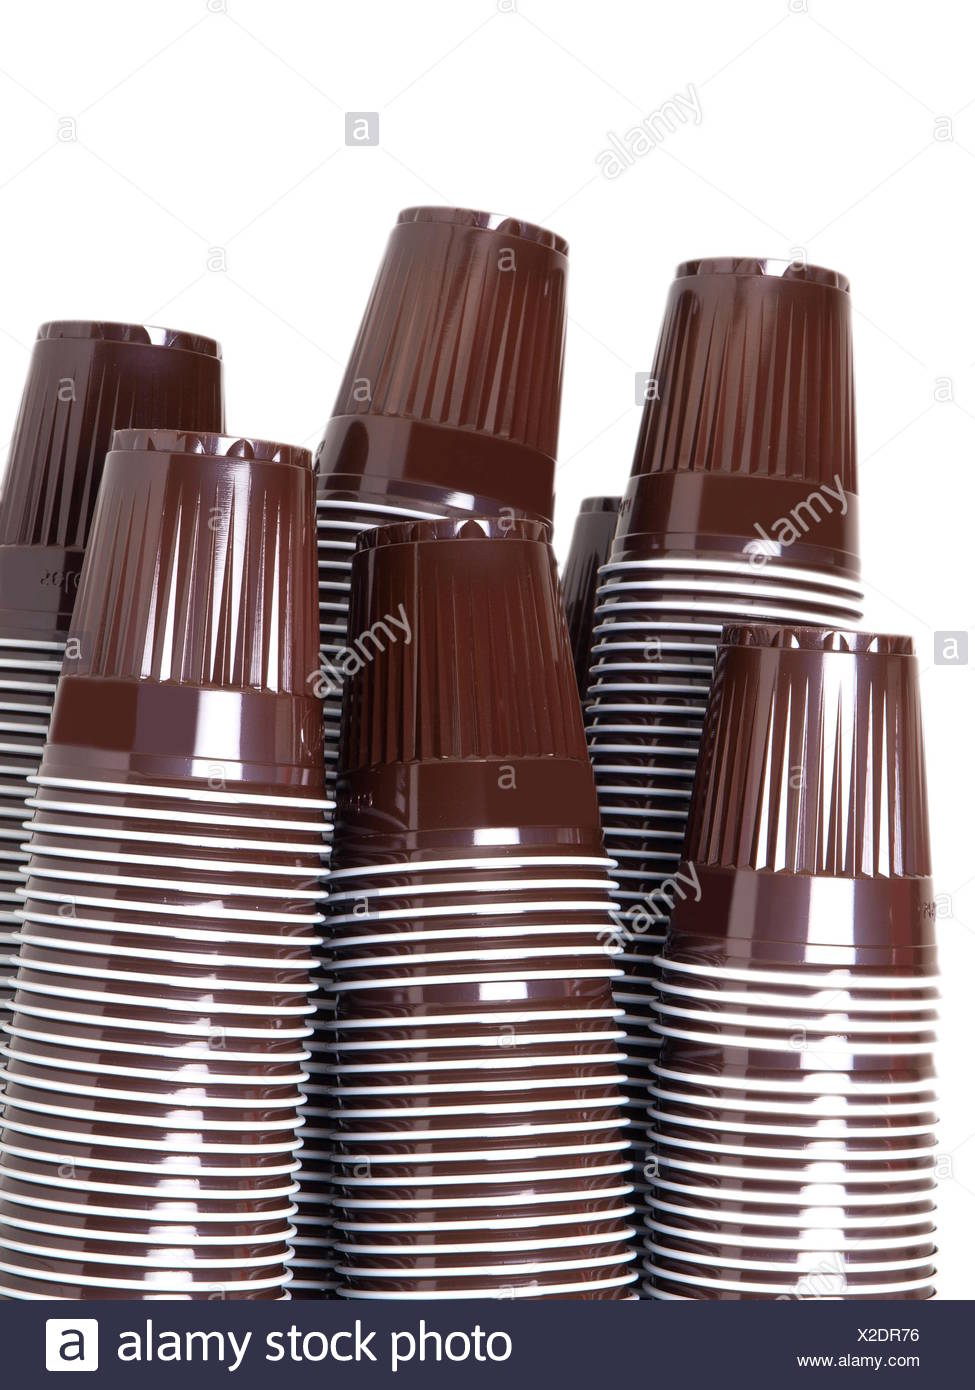 Brown plastic cups - Stock Image